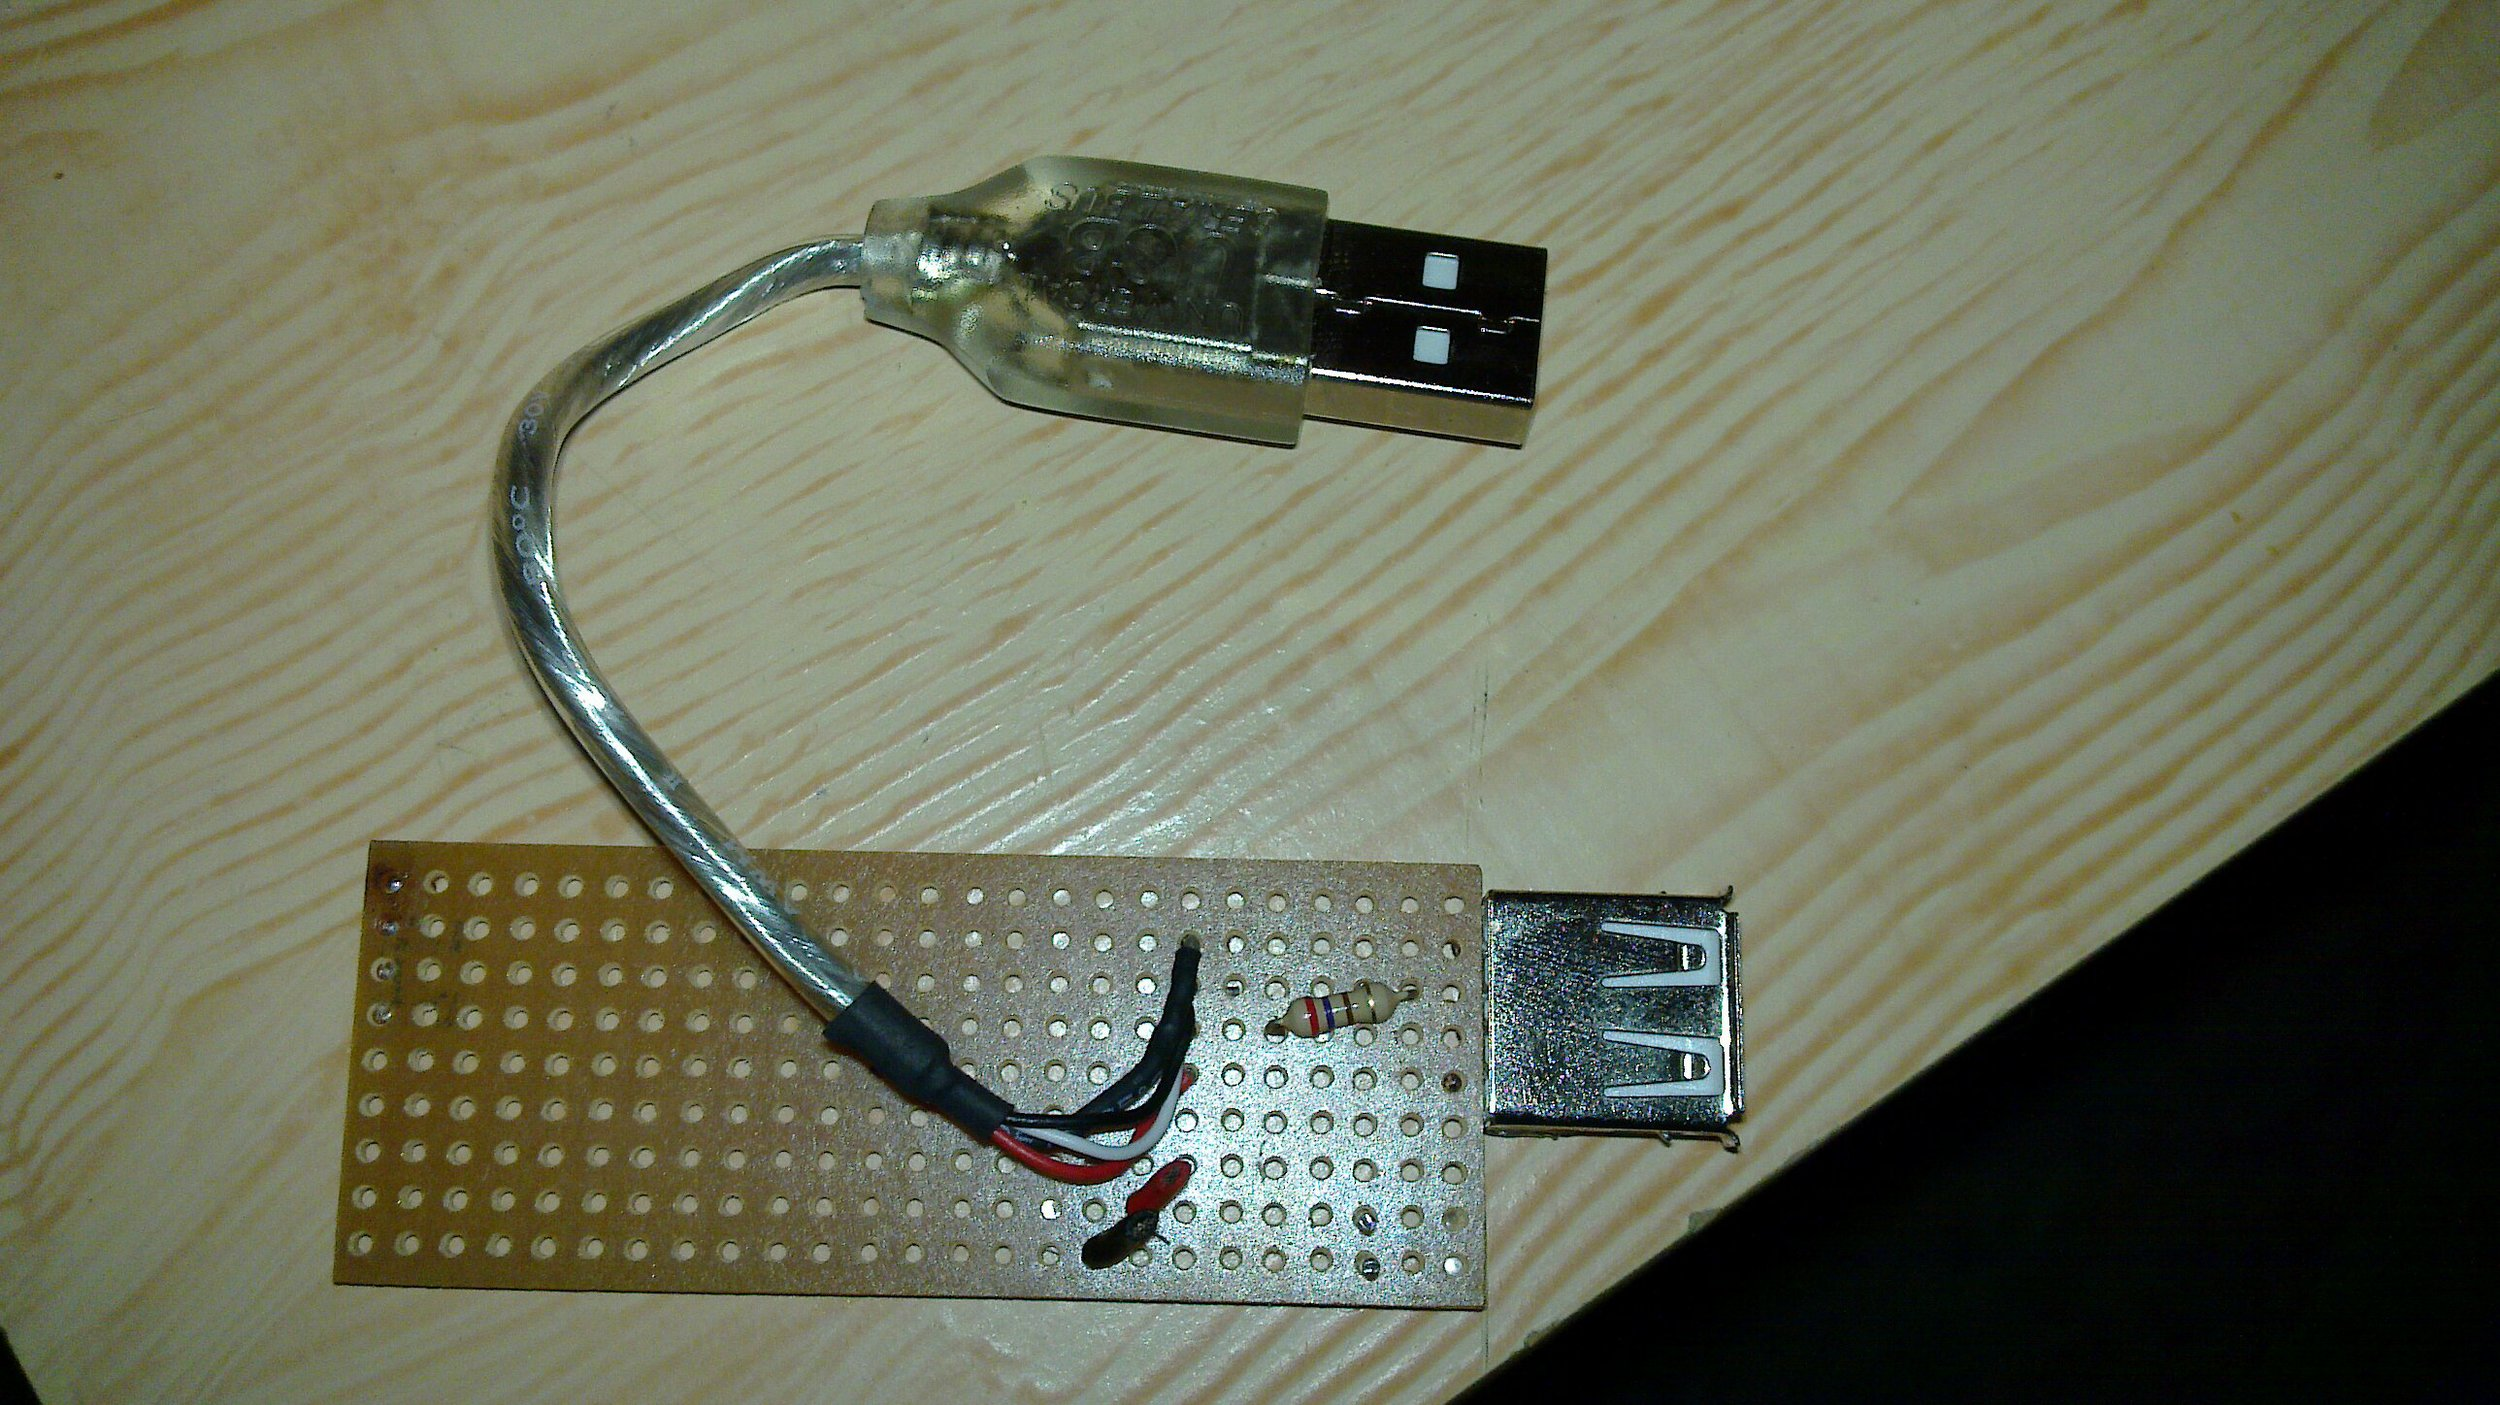 usb cable with d+ d- joined with resistor